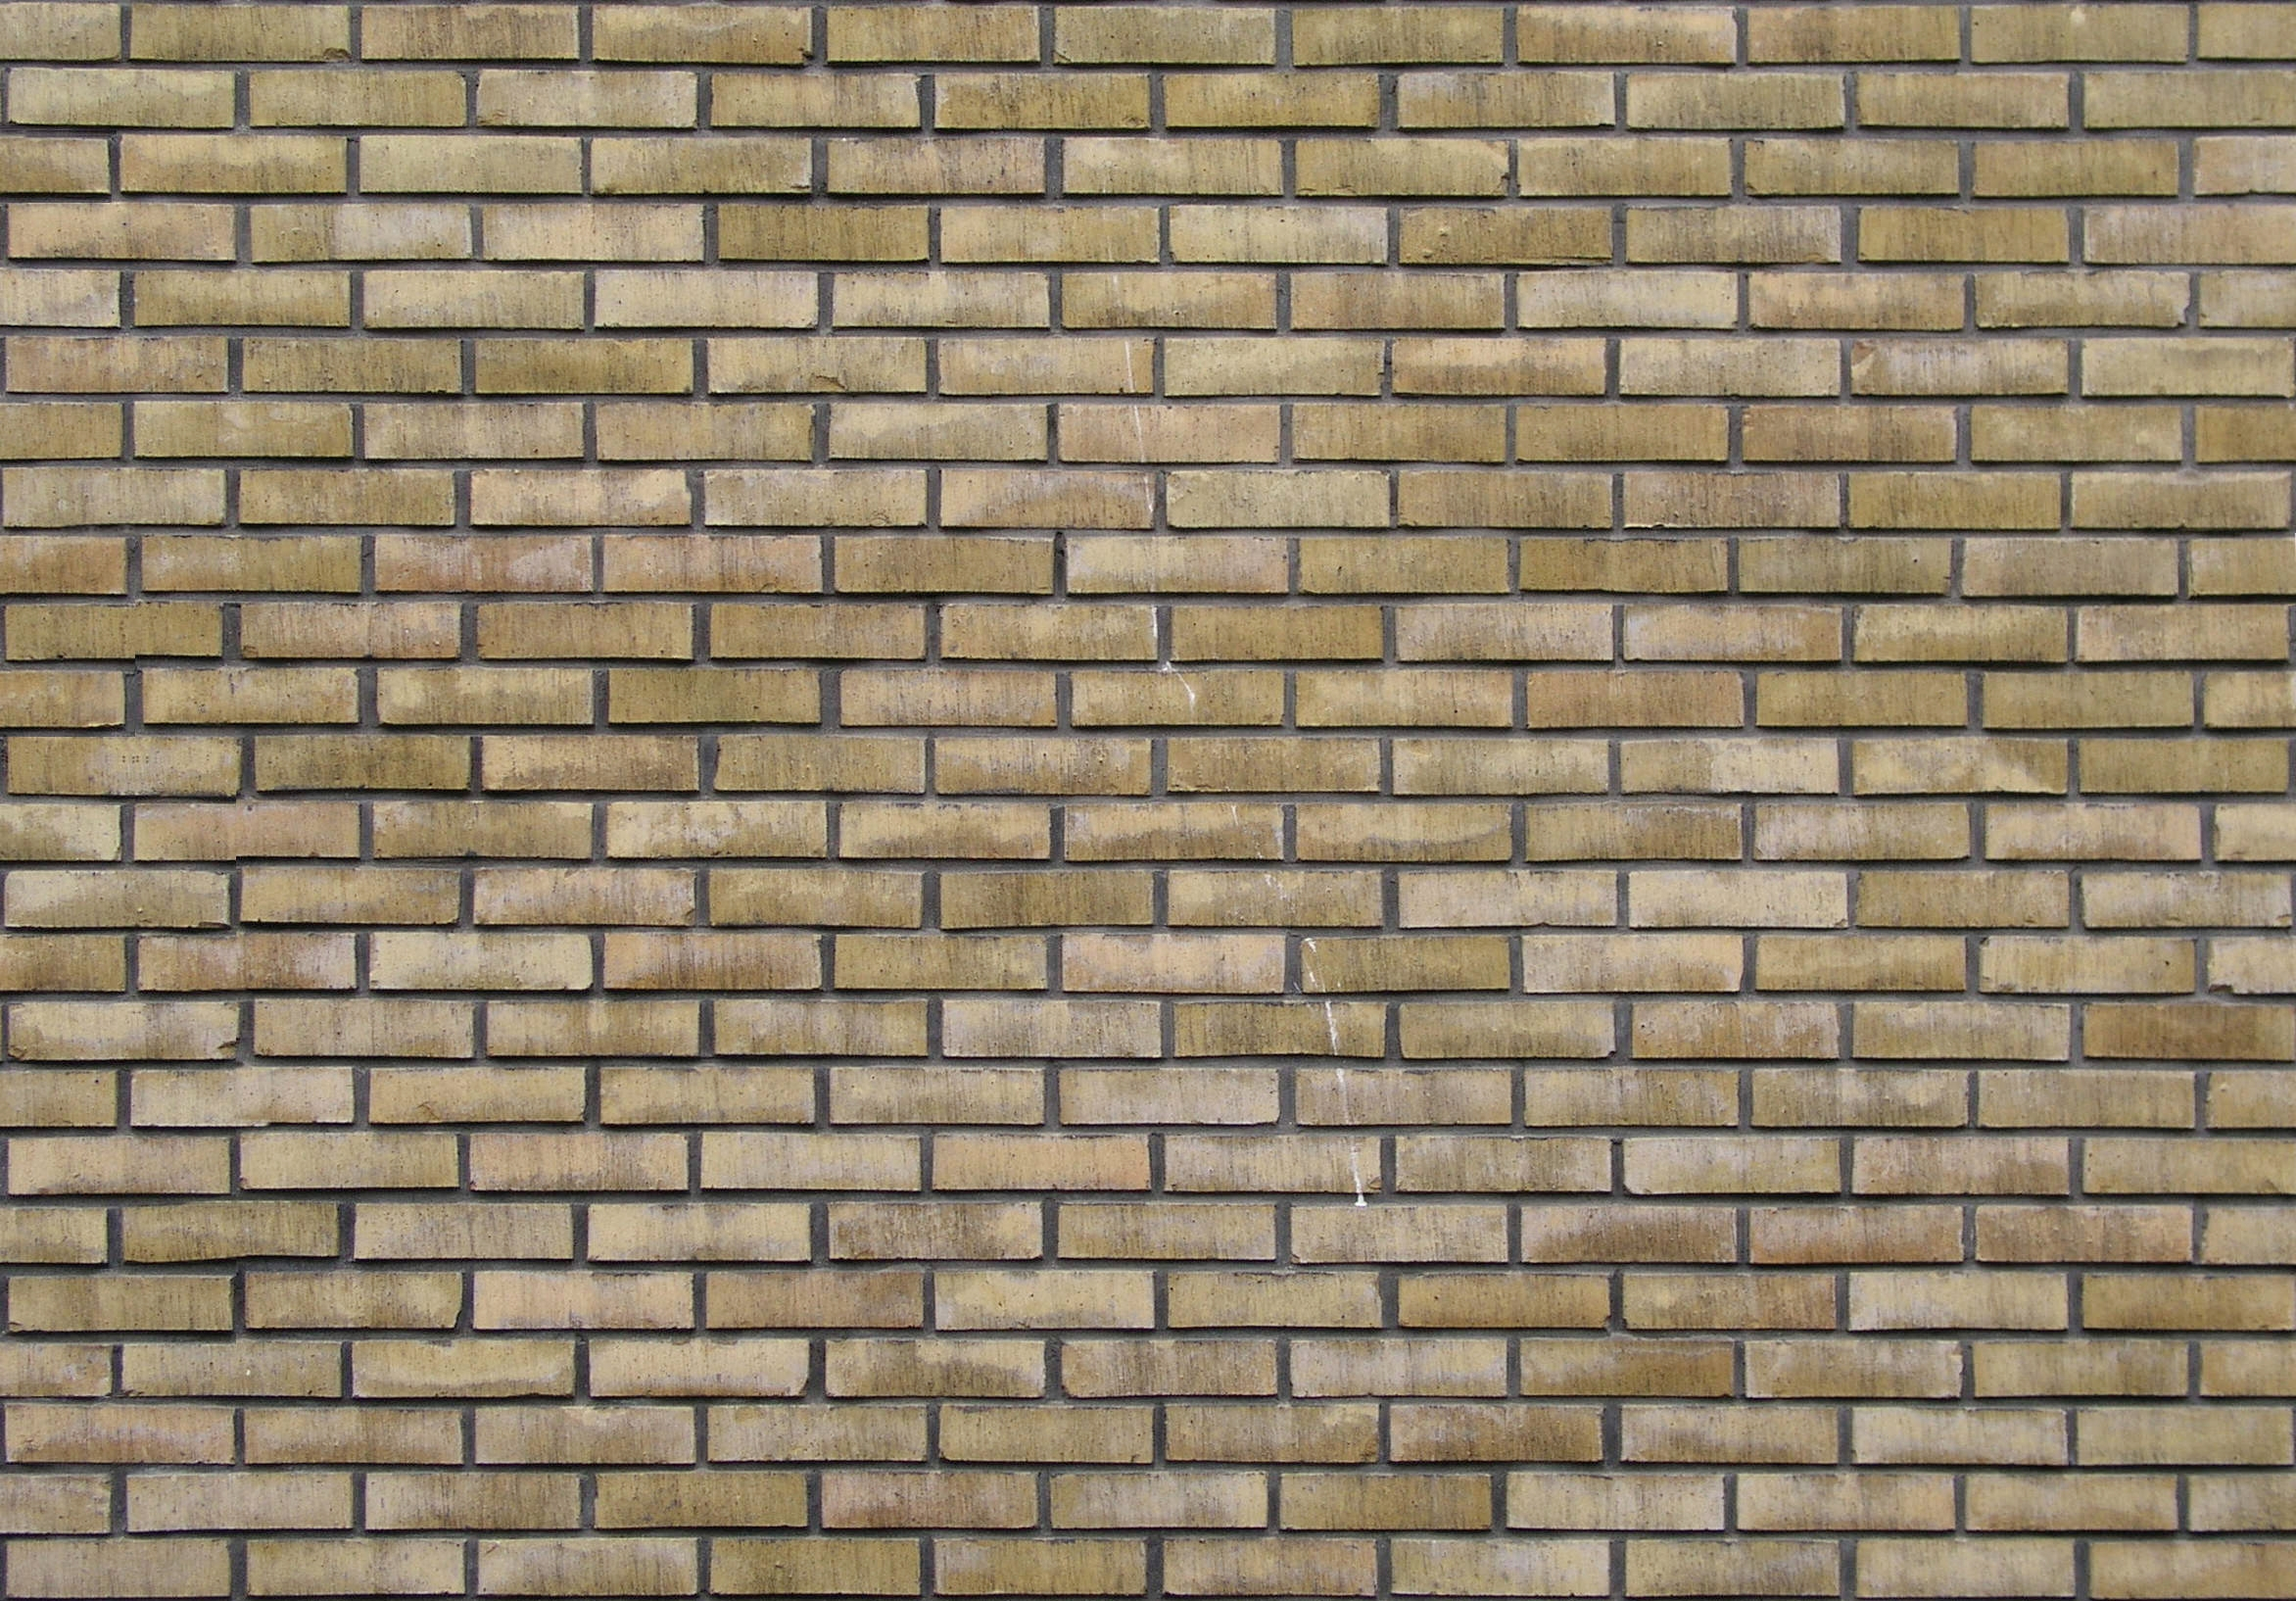 top brick wall design background wallpaper - Brick Wall Design